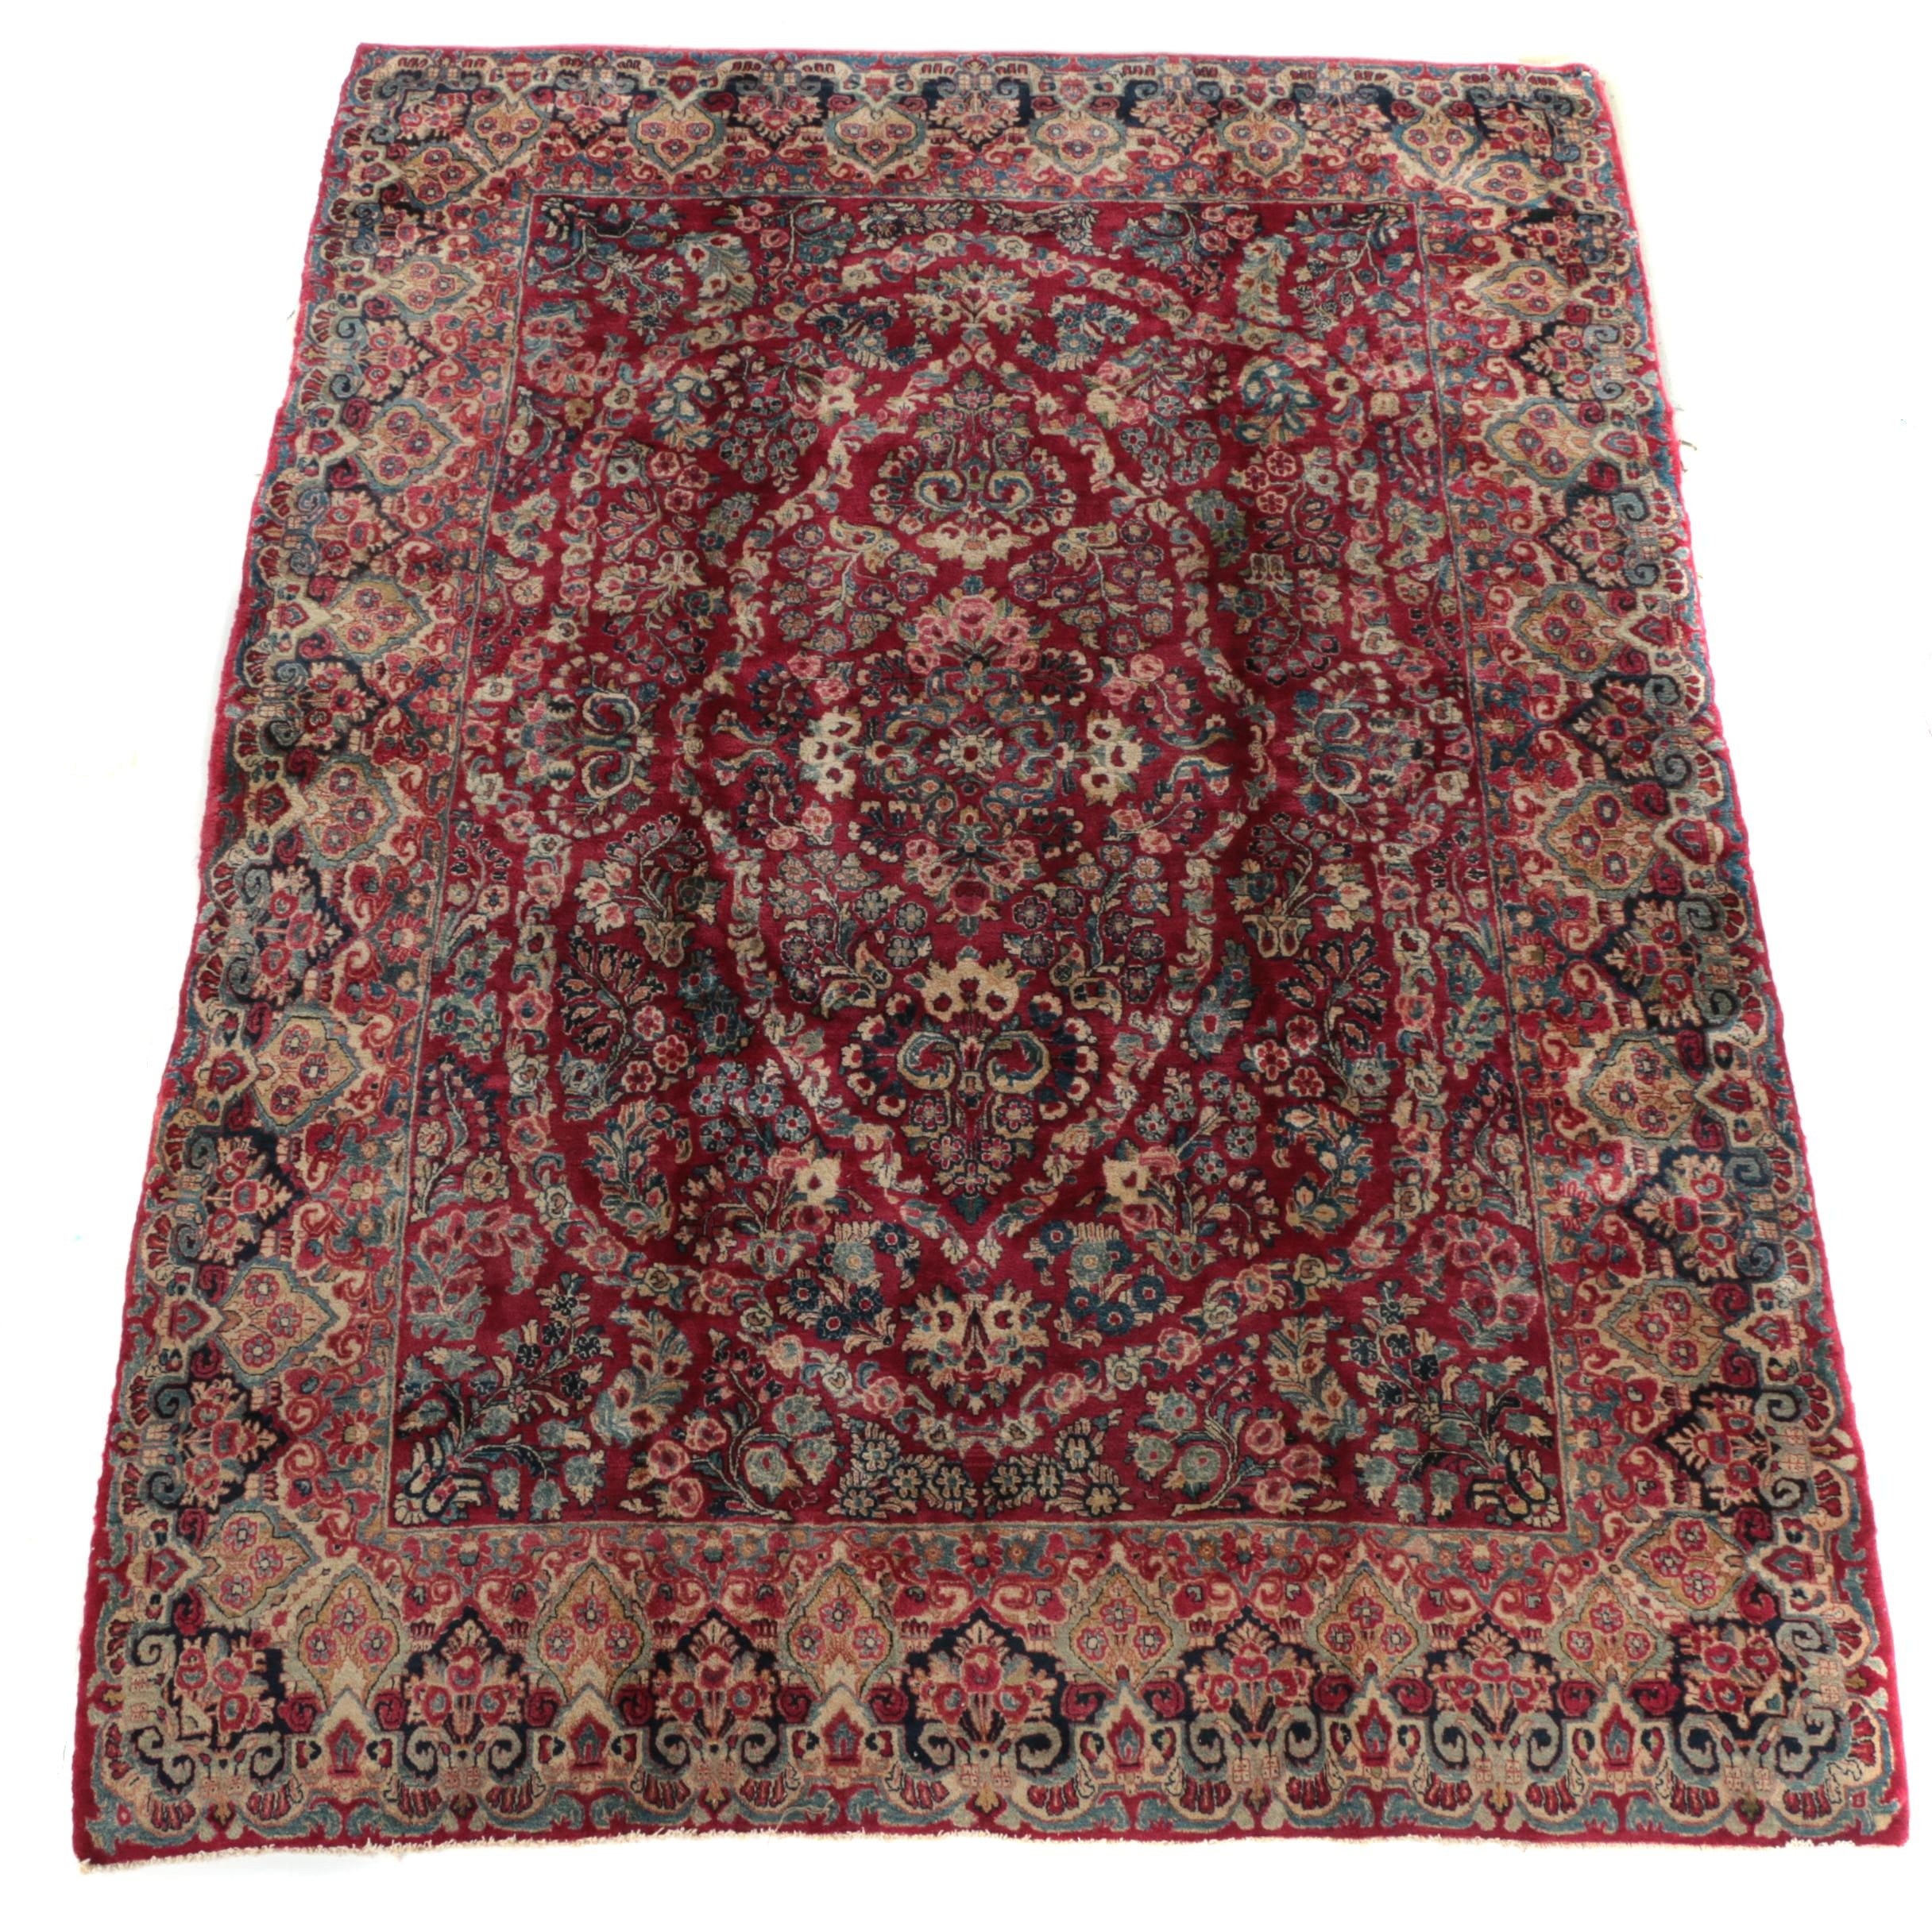 Hand-Knotted Central Asian Wool Area Rug